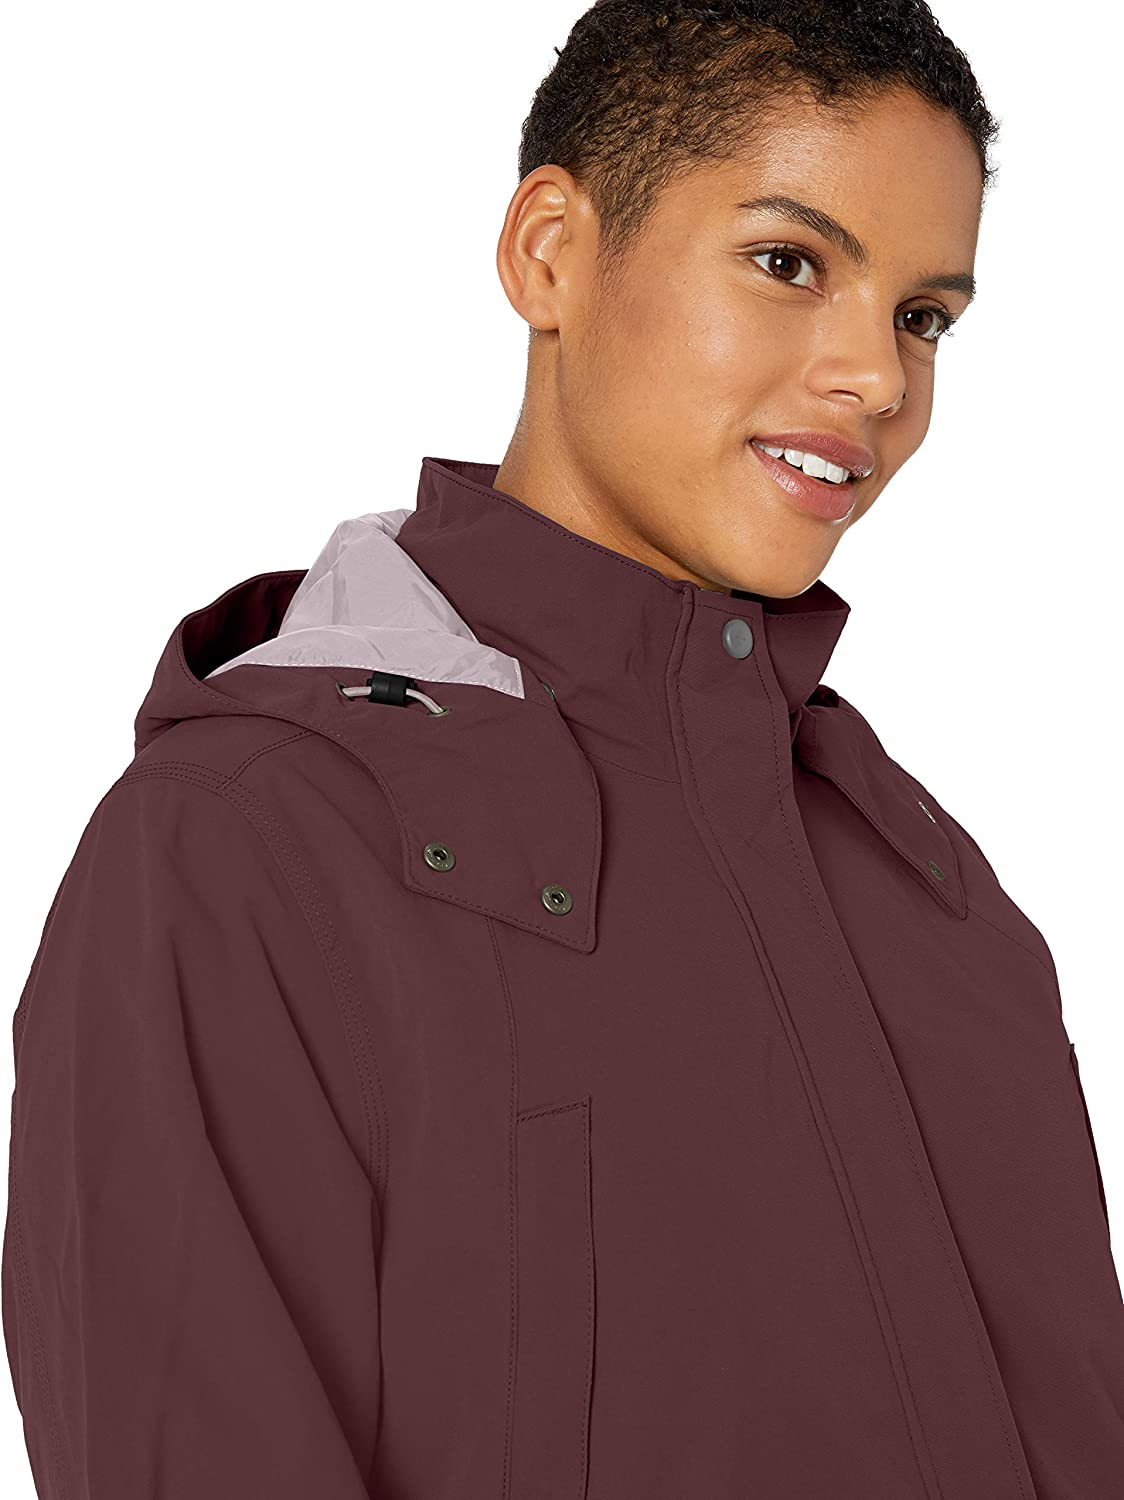 Deep Wine Carhartt Womens Shoreline Jacket 2X-Large Regular and Plus Sizes